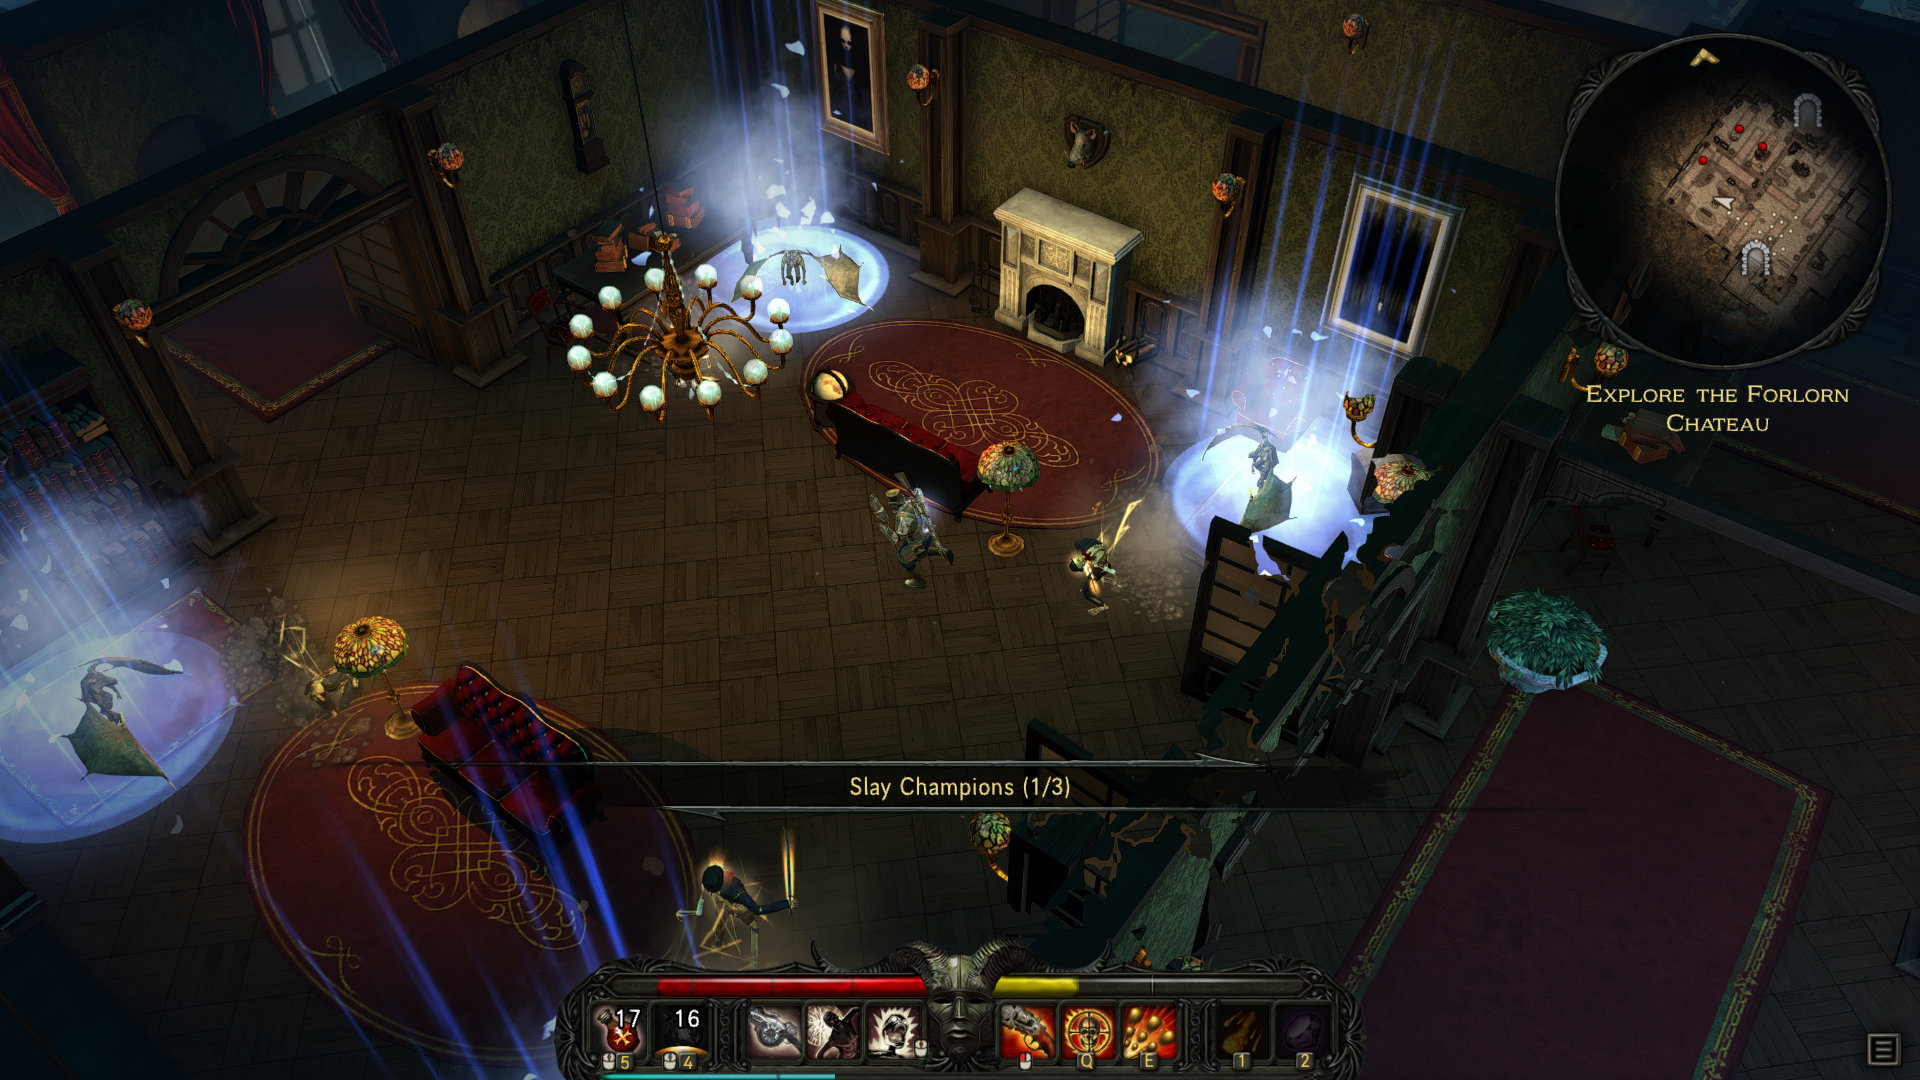 Once you trash the undead you can trash the furnishings too. It's really quite therapeutic.